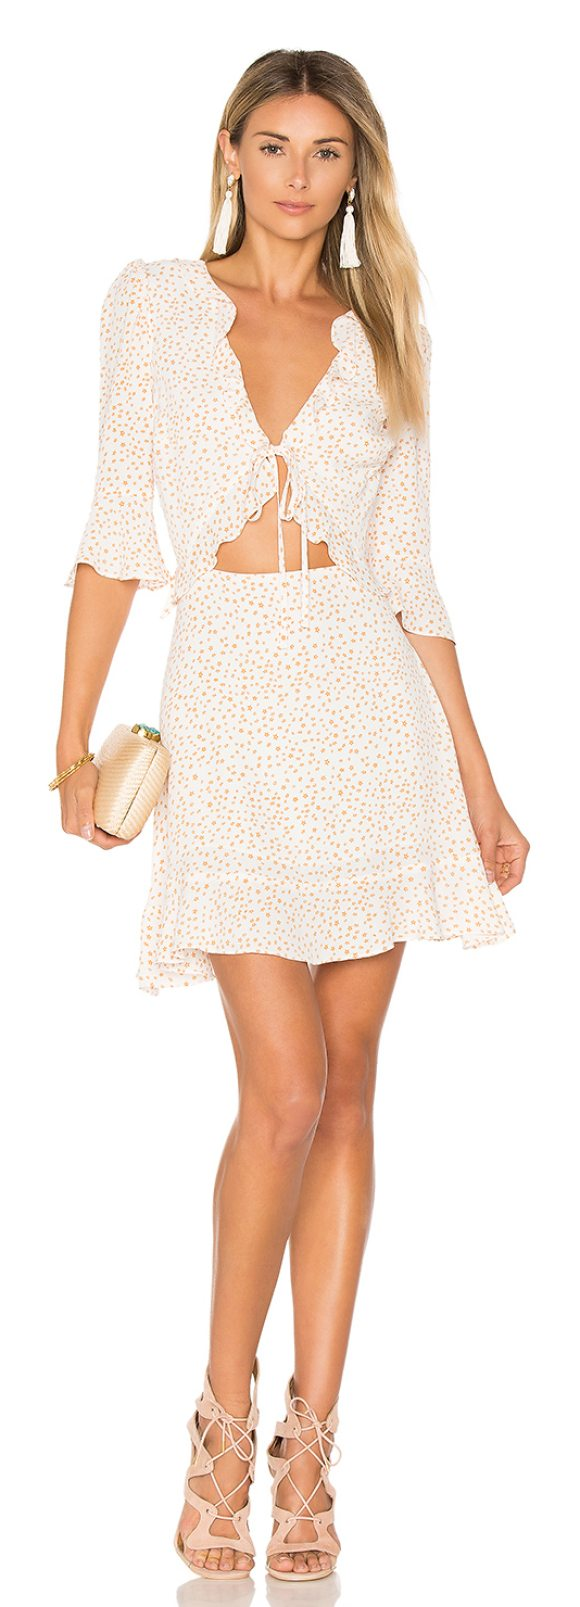 FOR LOVE & LEMONS Nostalgic Tie Front Dress - Summer nights and never growing up. In a youthful star...